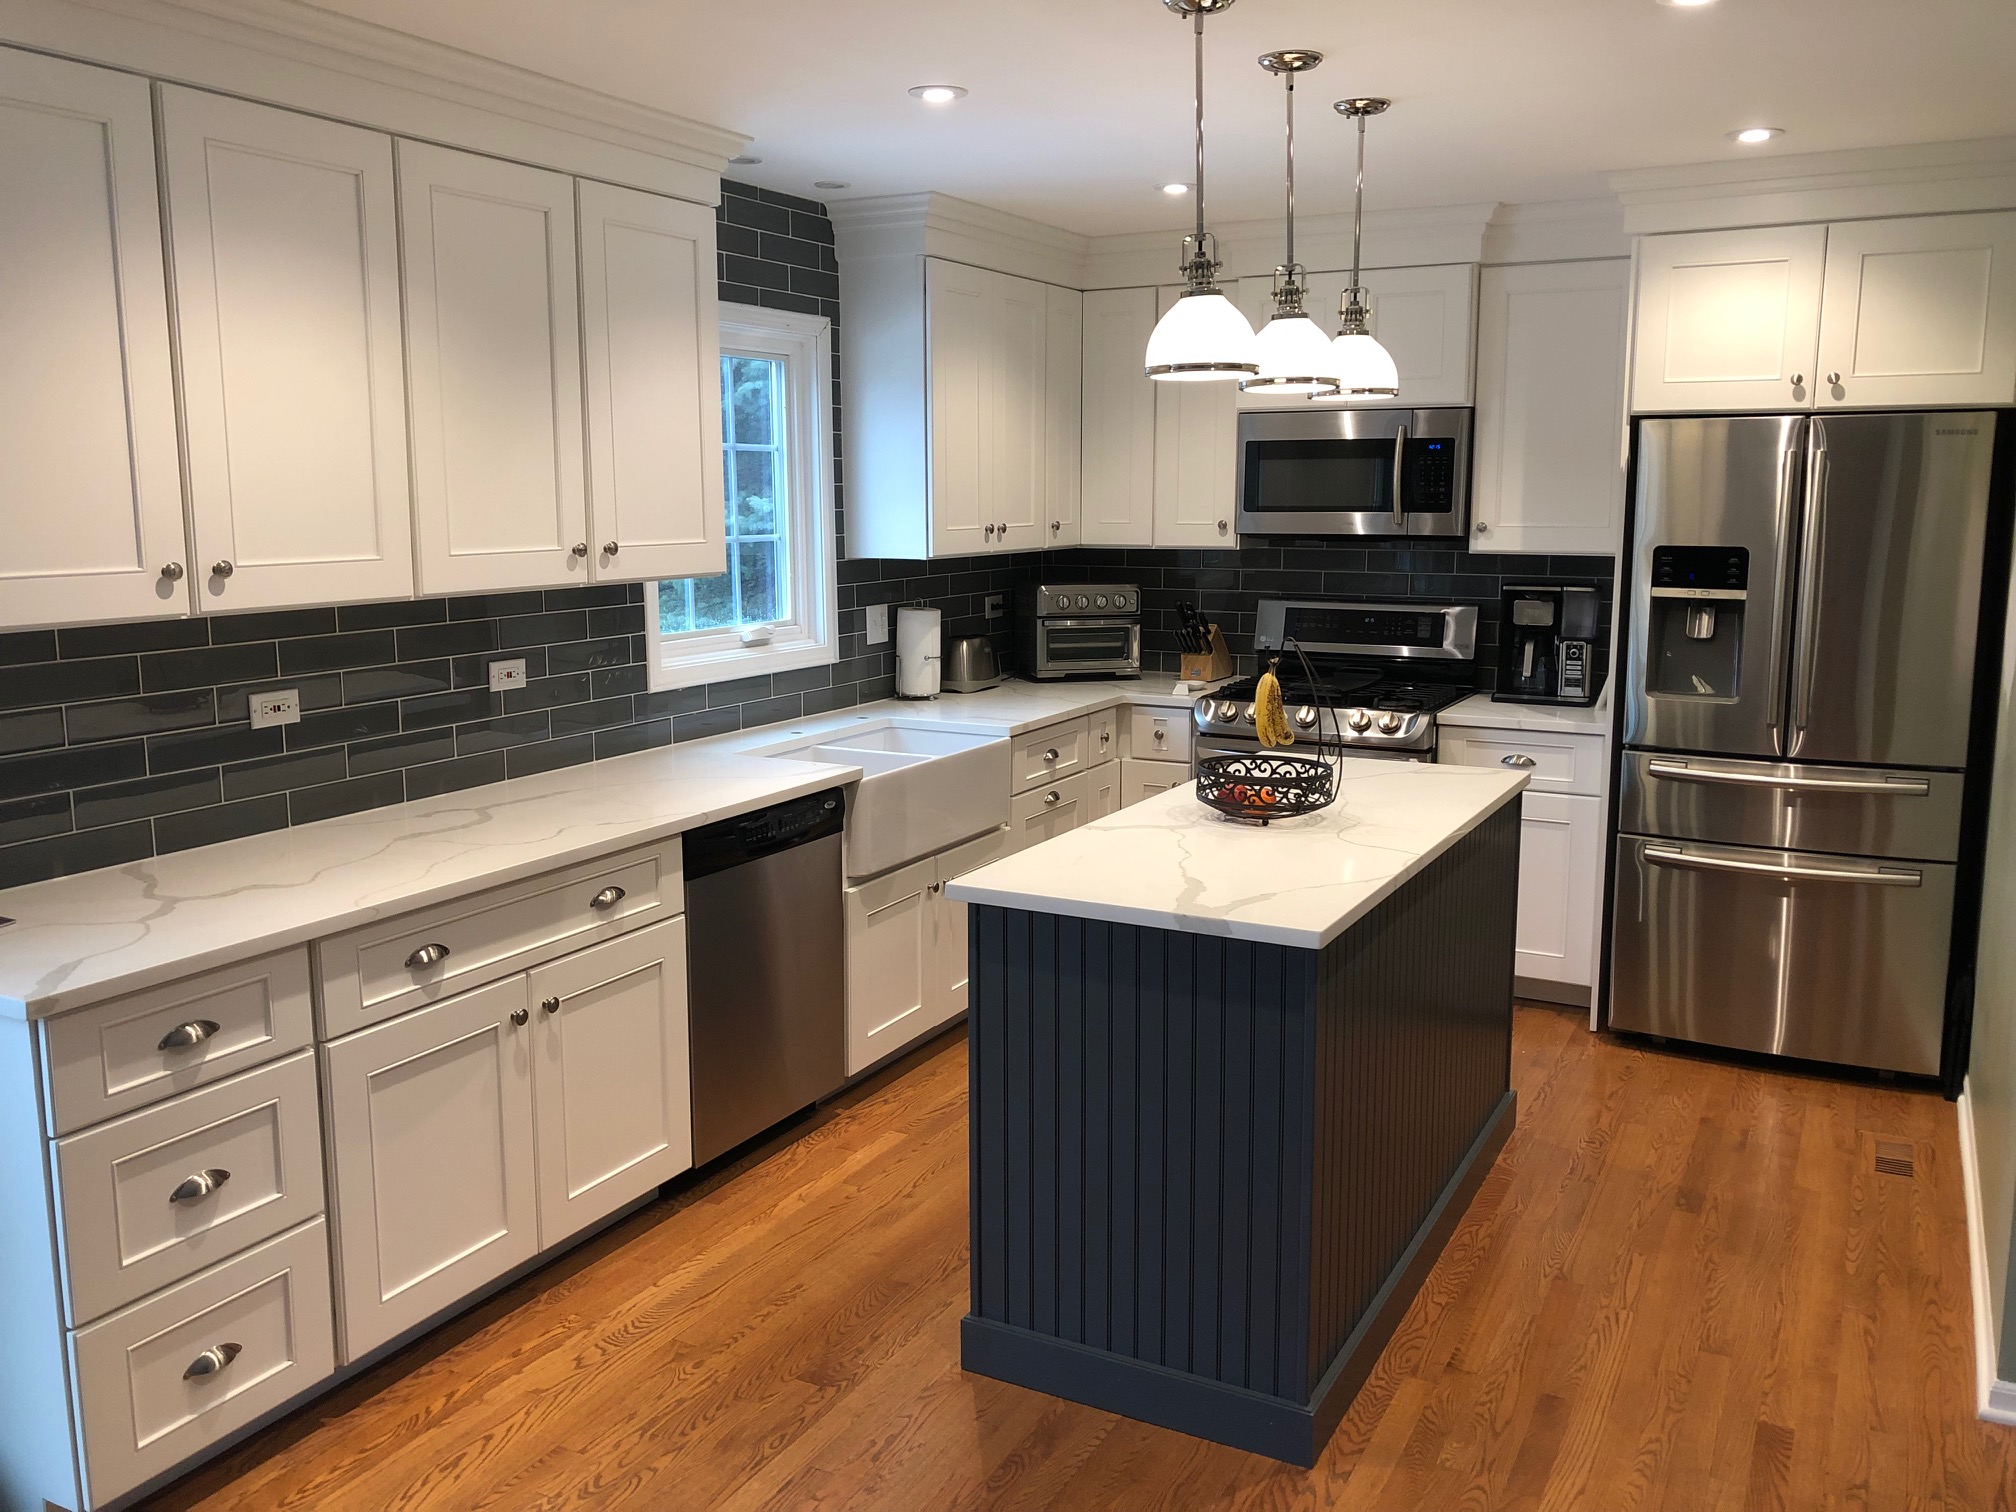 AFTER - BRIGHT!!! white cabinets, quartz counters, new drawer knobs/pulls, modern backsplash and light fixtures